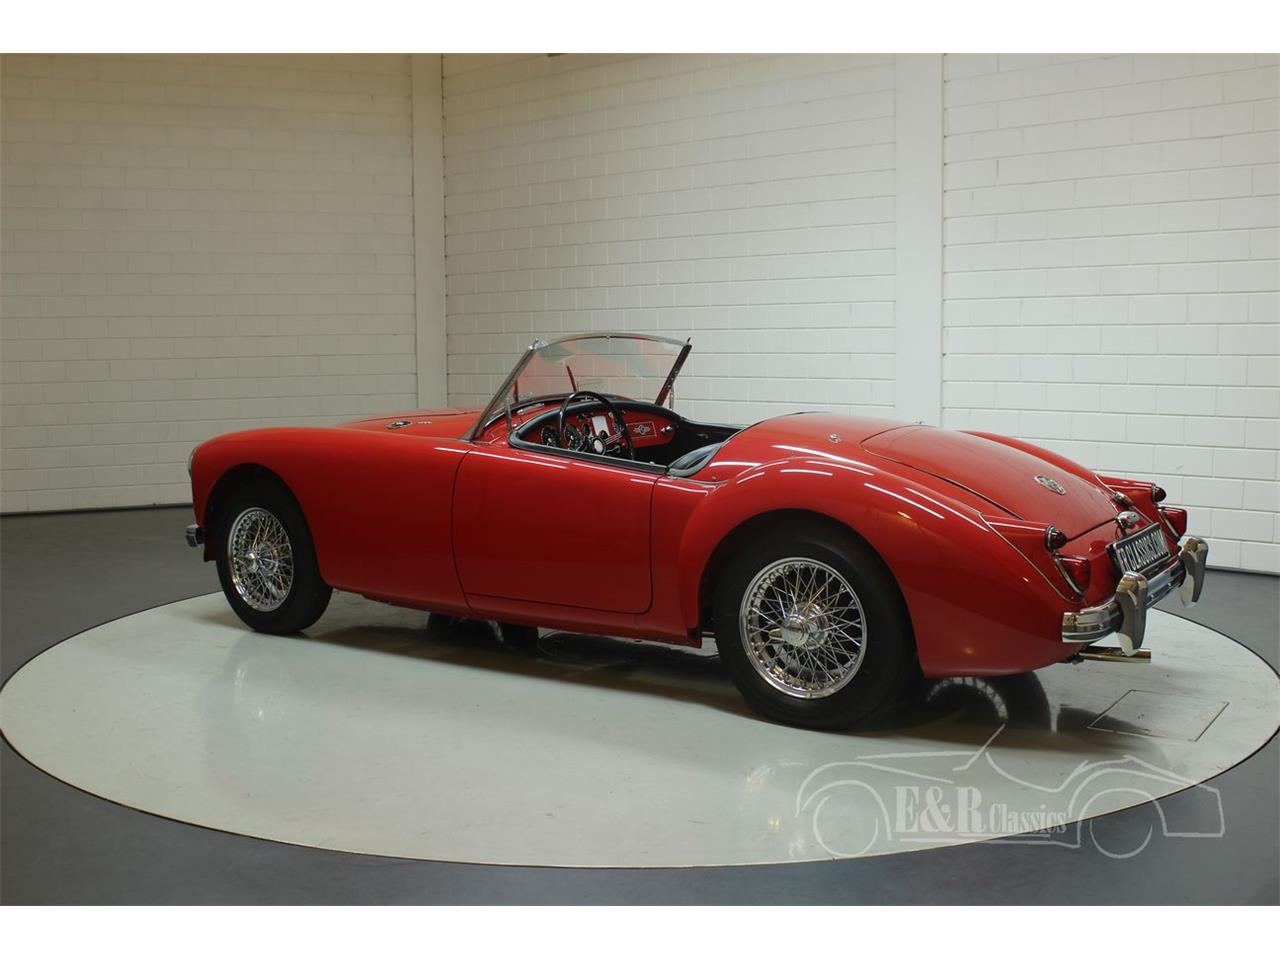 Large Picture of Classic '59 MGA located in - Keine Angabe - - $56,500.00 - PGST